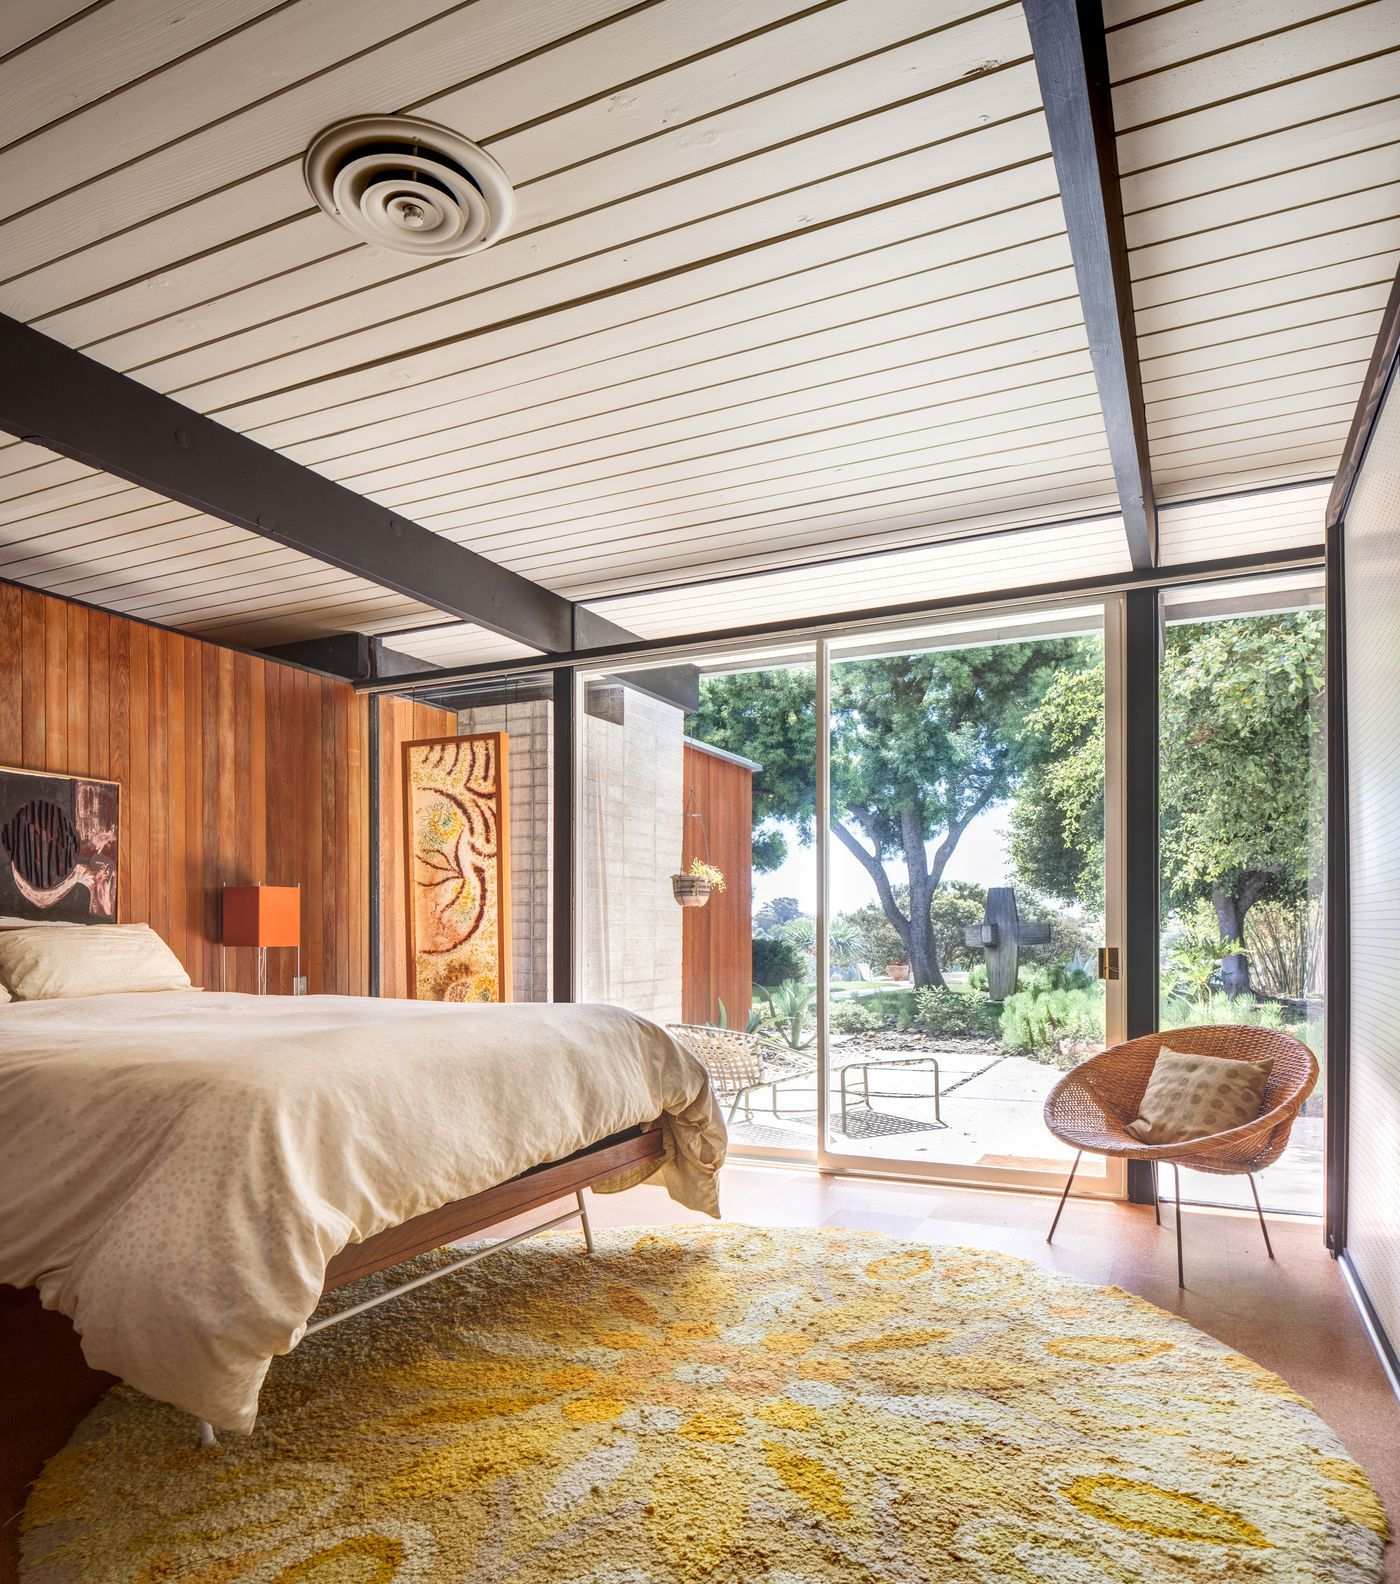 Gorgeously restored midcentury house asks $800K in San Diego - Curbed